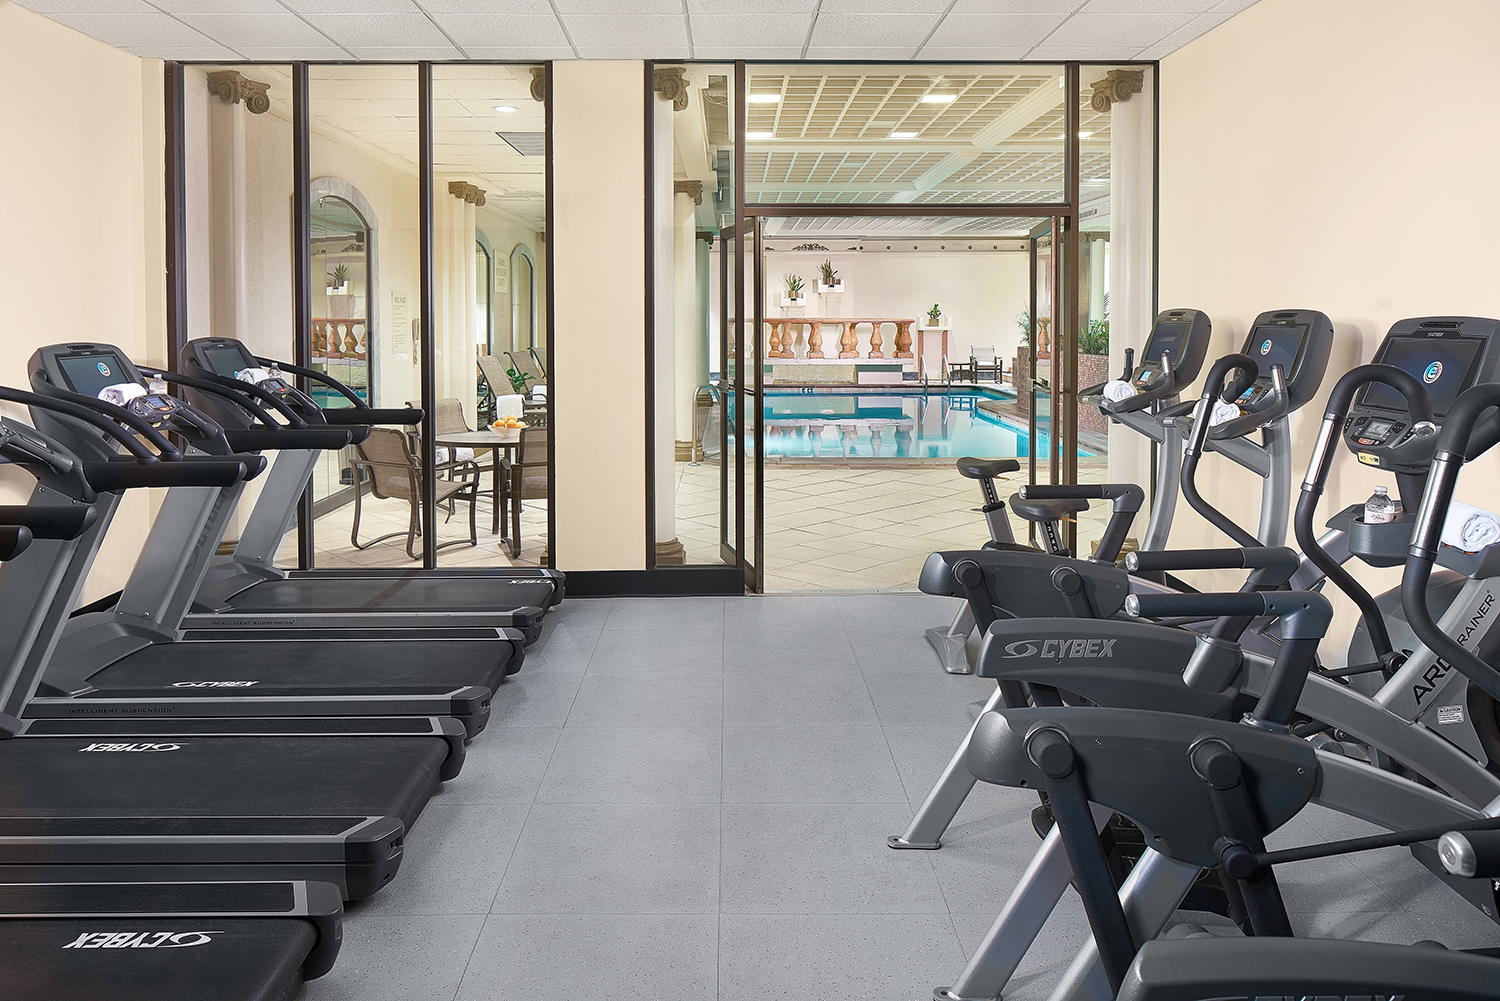 Spa guests also receive access to the Athletic Club, which has a heated pool.